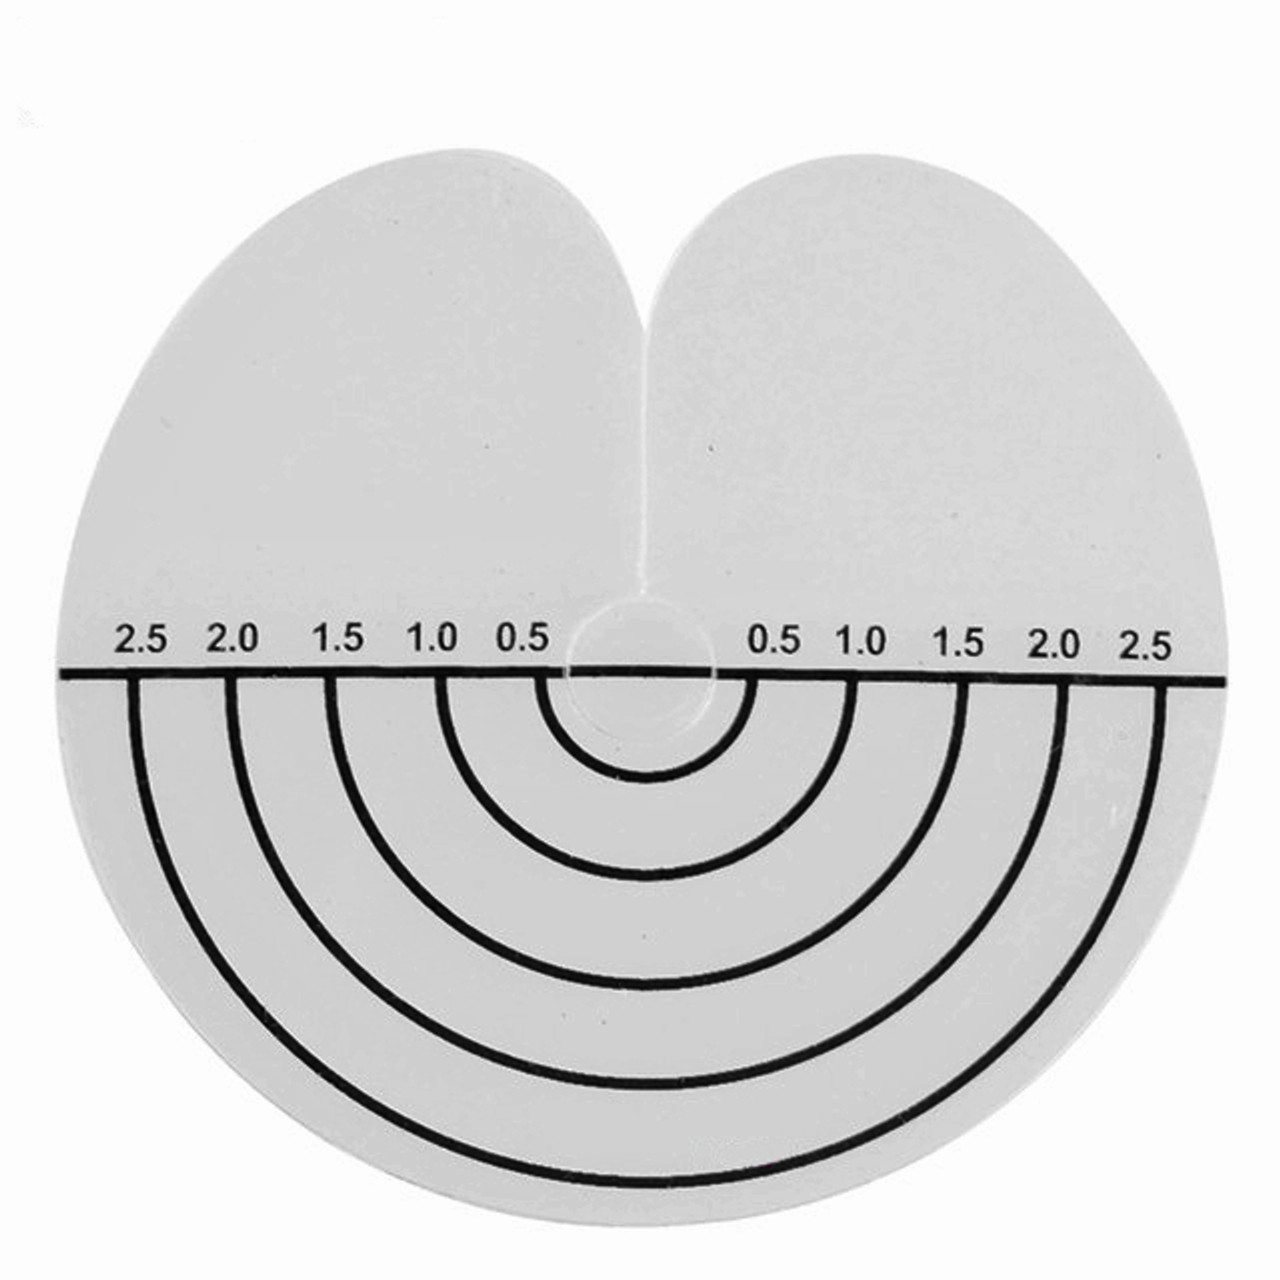 Shields for Keratin Hair Extensions, 10 disks